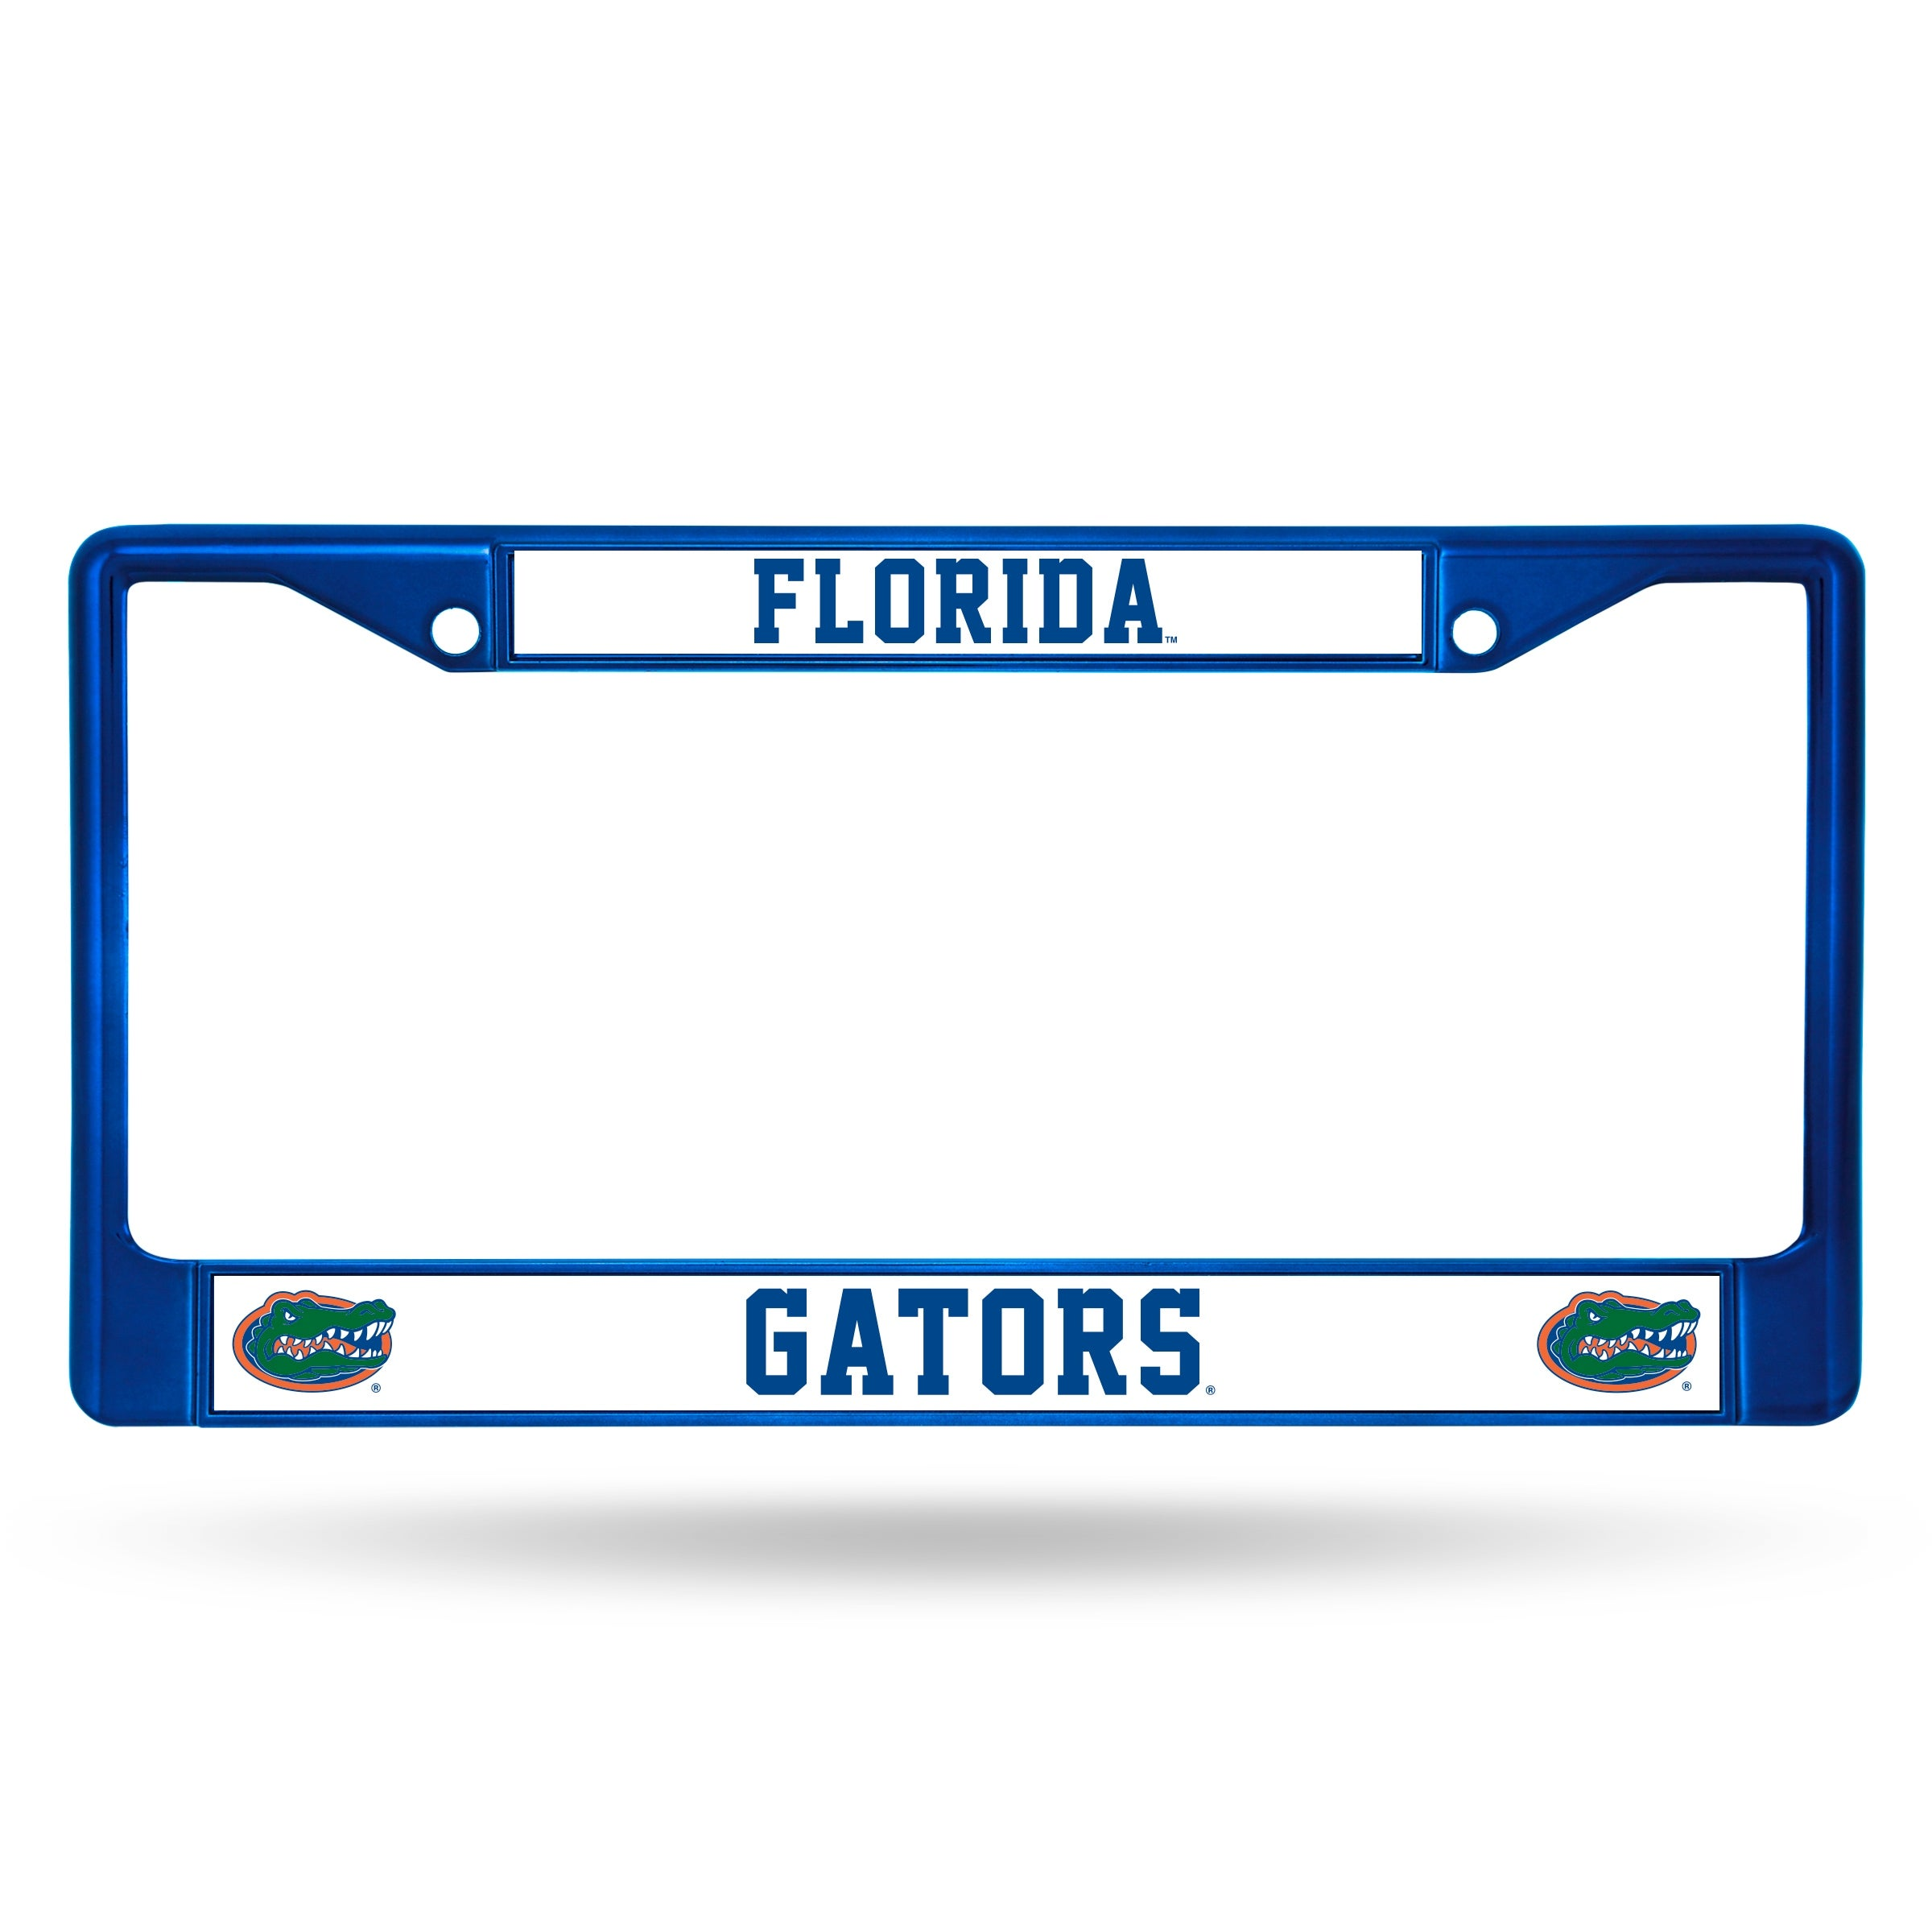 Florida Gators Metal License Plate Frame - Blue - Free Shipping On ...